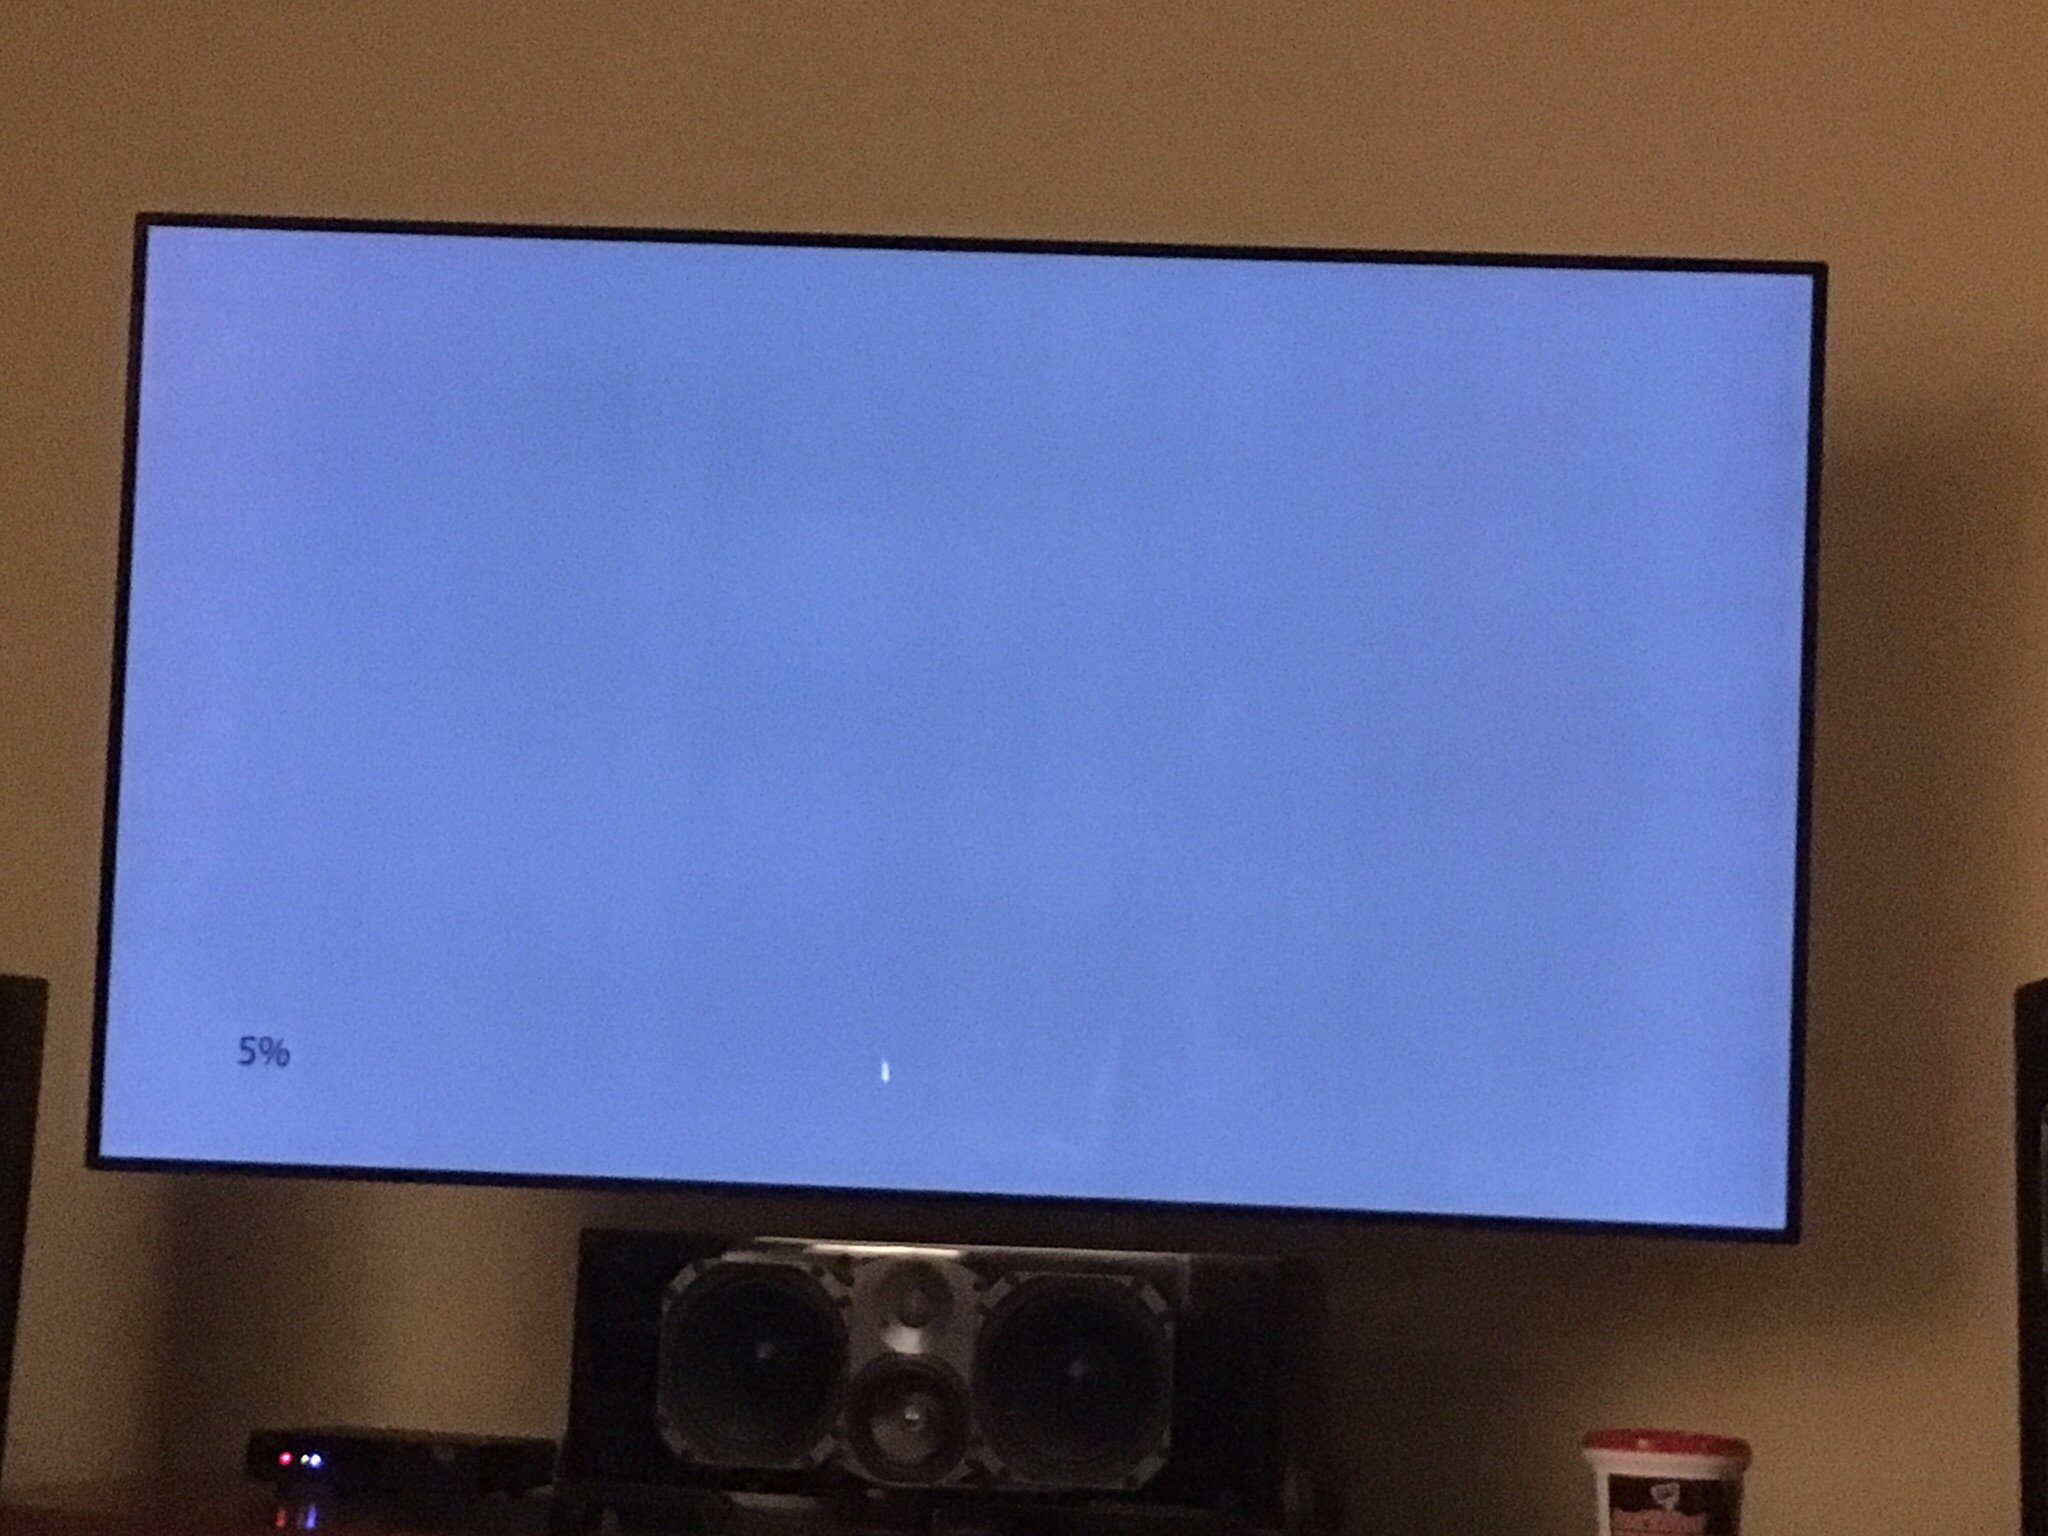 lg 75sj8570. got my c7 replaced yesterday due to banding on the first. this one is very uniform. lg 75sj8570